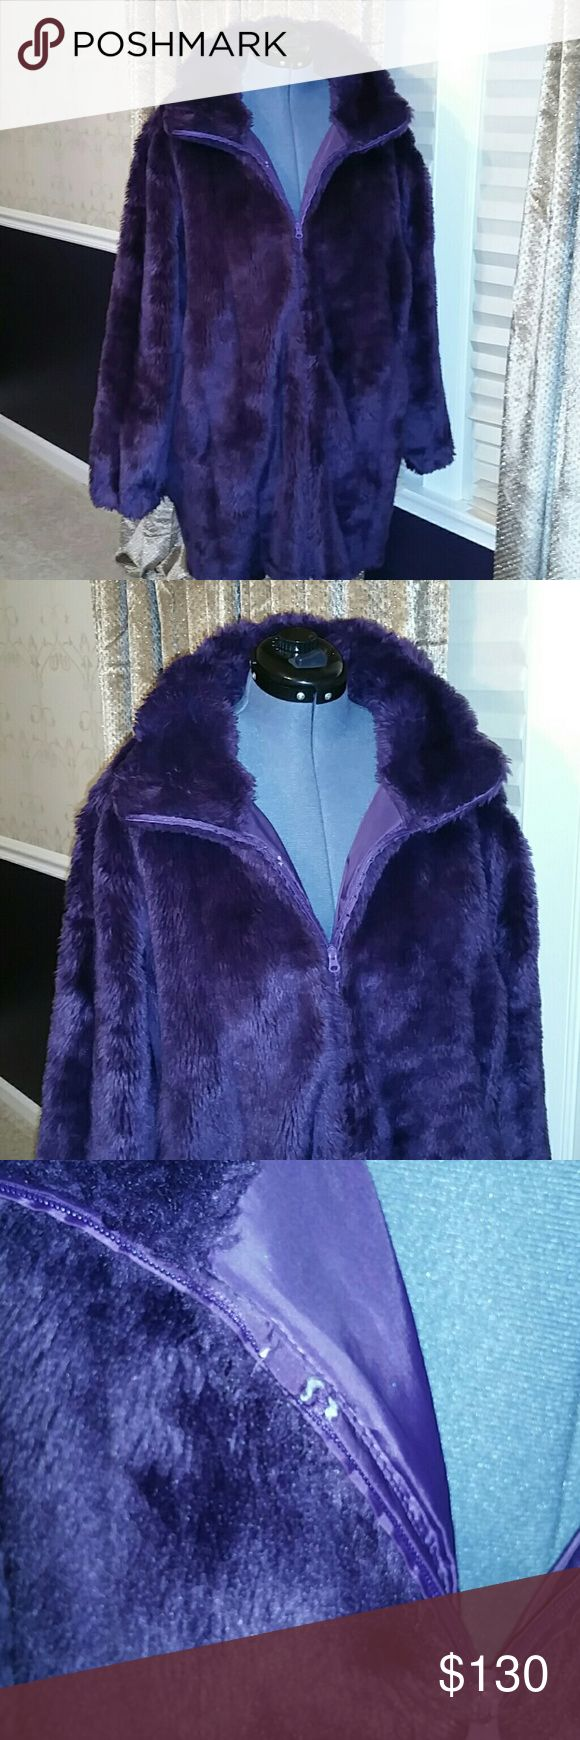 Plus Size Plush Purple Furry Coat w/ Zipper I ACCEPT OFFERS! I NEVER DECLINE OFFERS! I ACCEPT OR COUNTER ONLY!   Purple Plush Furry Coat With Zipper and Two side pockets.  Fabulous Fashion Statement!  Size 2X  Inside lining behind zipper there's a little snag....see picture.  Coat is in Newlike Condition. Fully Inspected and ready for shipment.  If I missed any other flaws excuse my oversight.  This coat is priced to move quickly!  Happy New Years! Roaman's Jackets & Coats Puffers